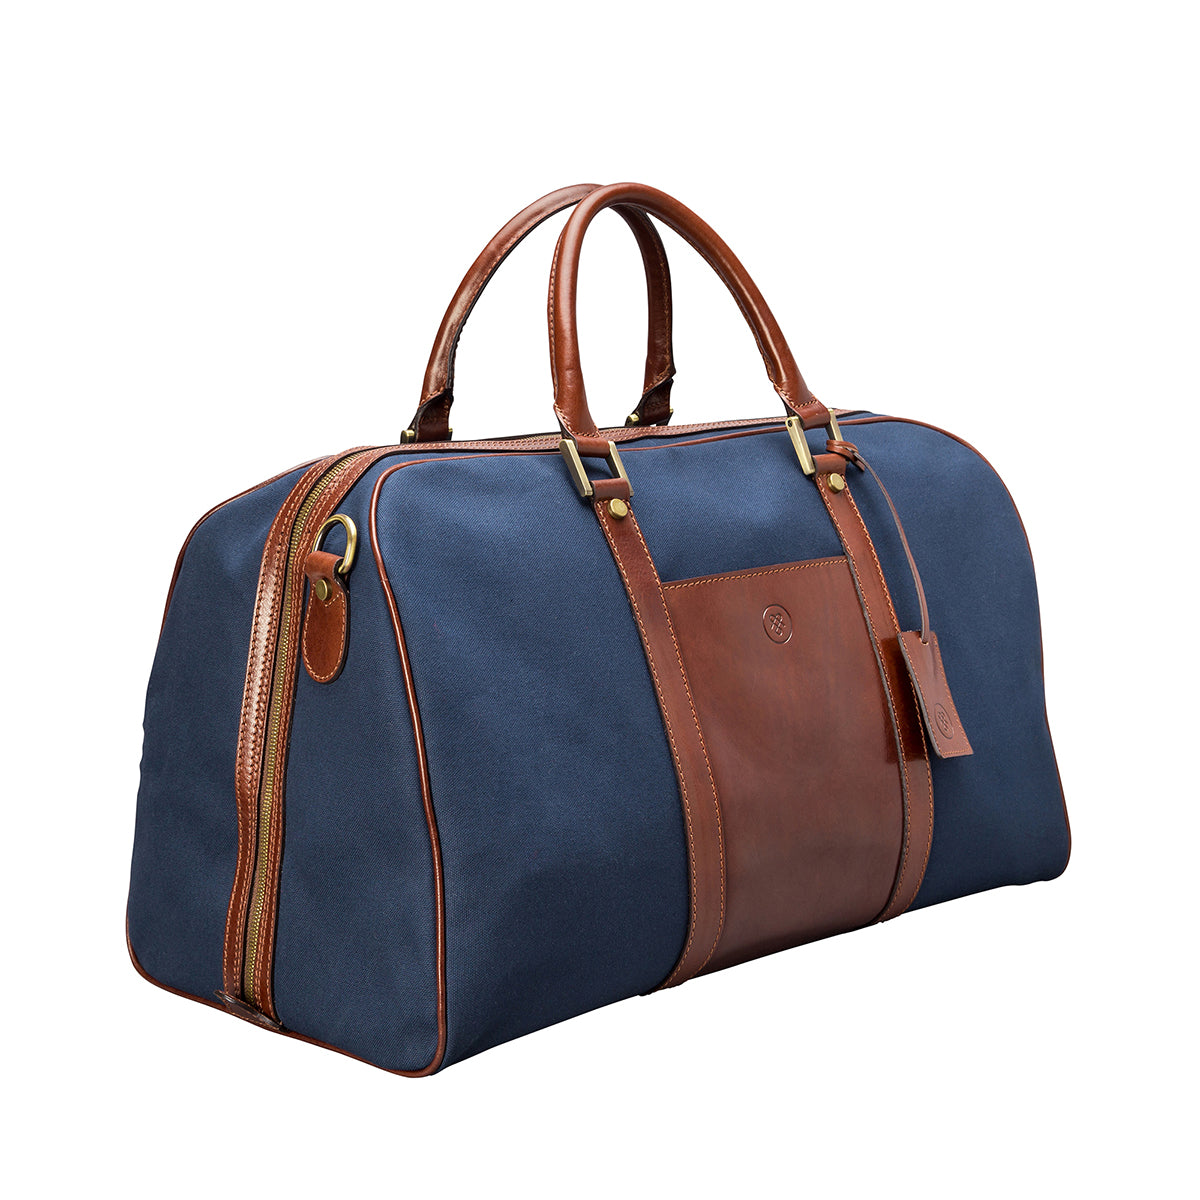 Image 2 of the 'Giovane' Rich Navy and Tan Holdall